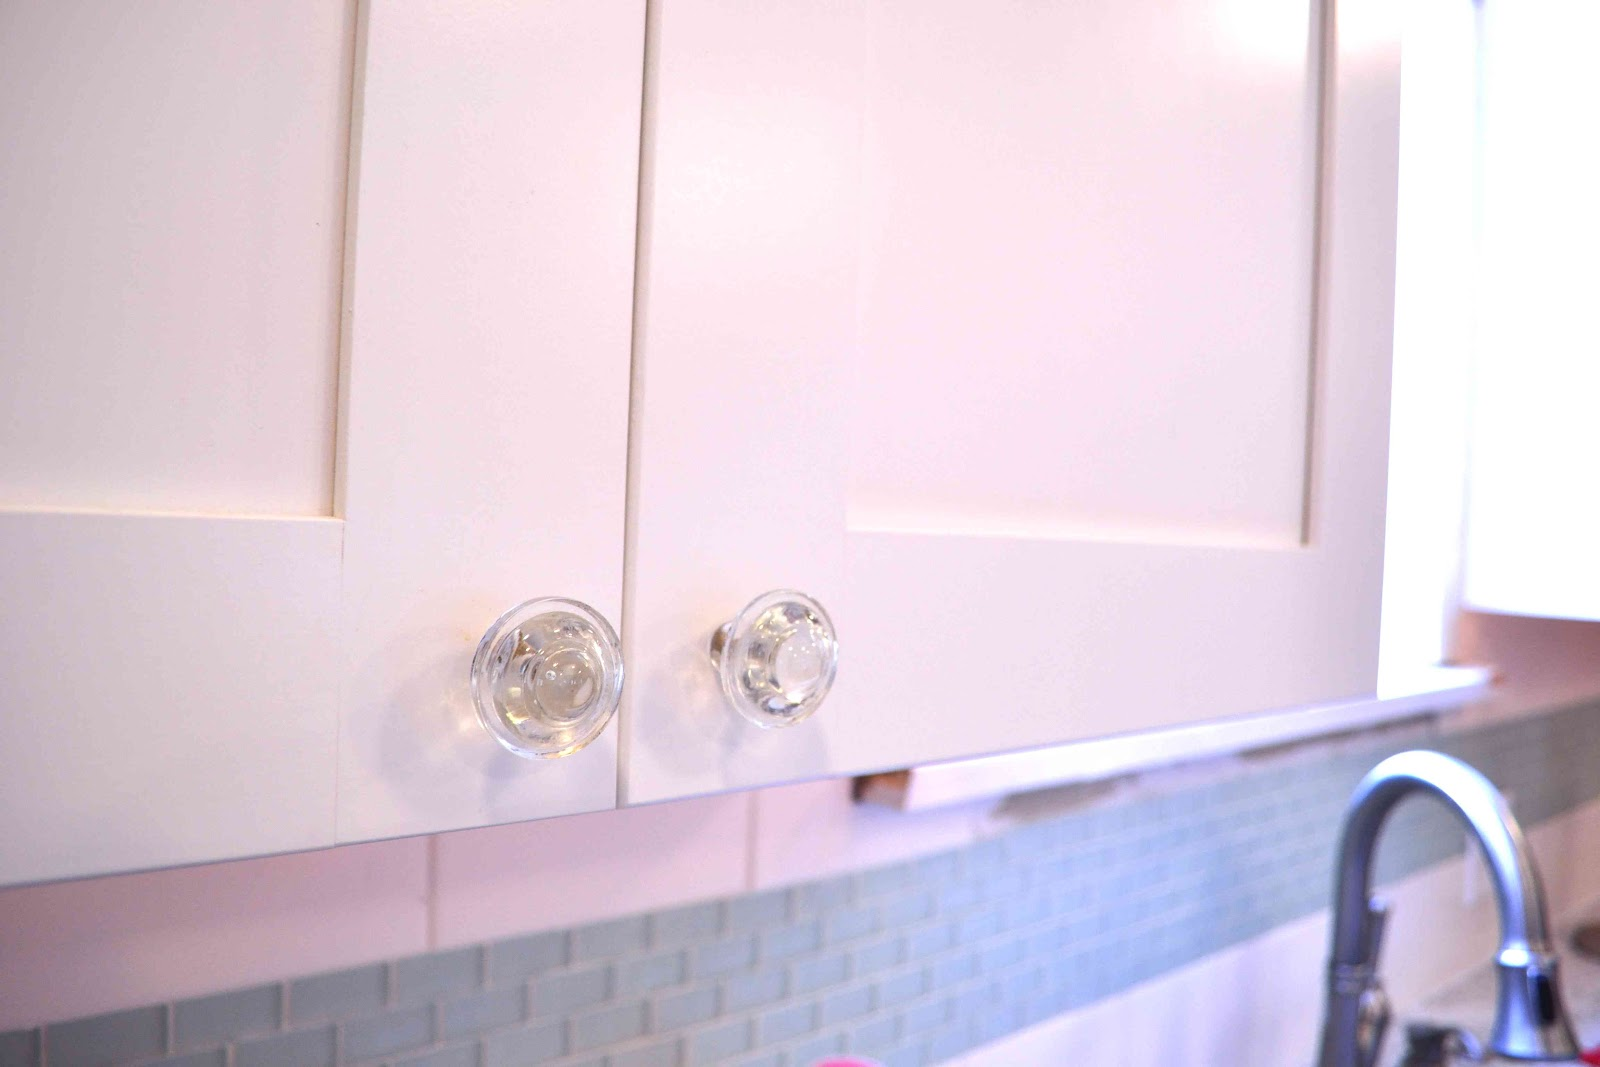 Bathroom cabinet knobs glass - Cabinet Knobs